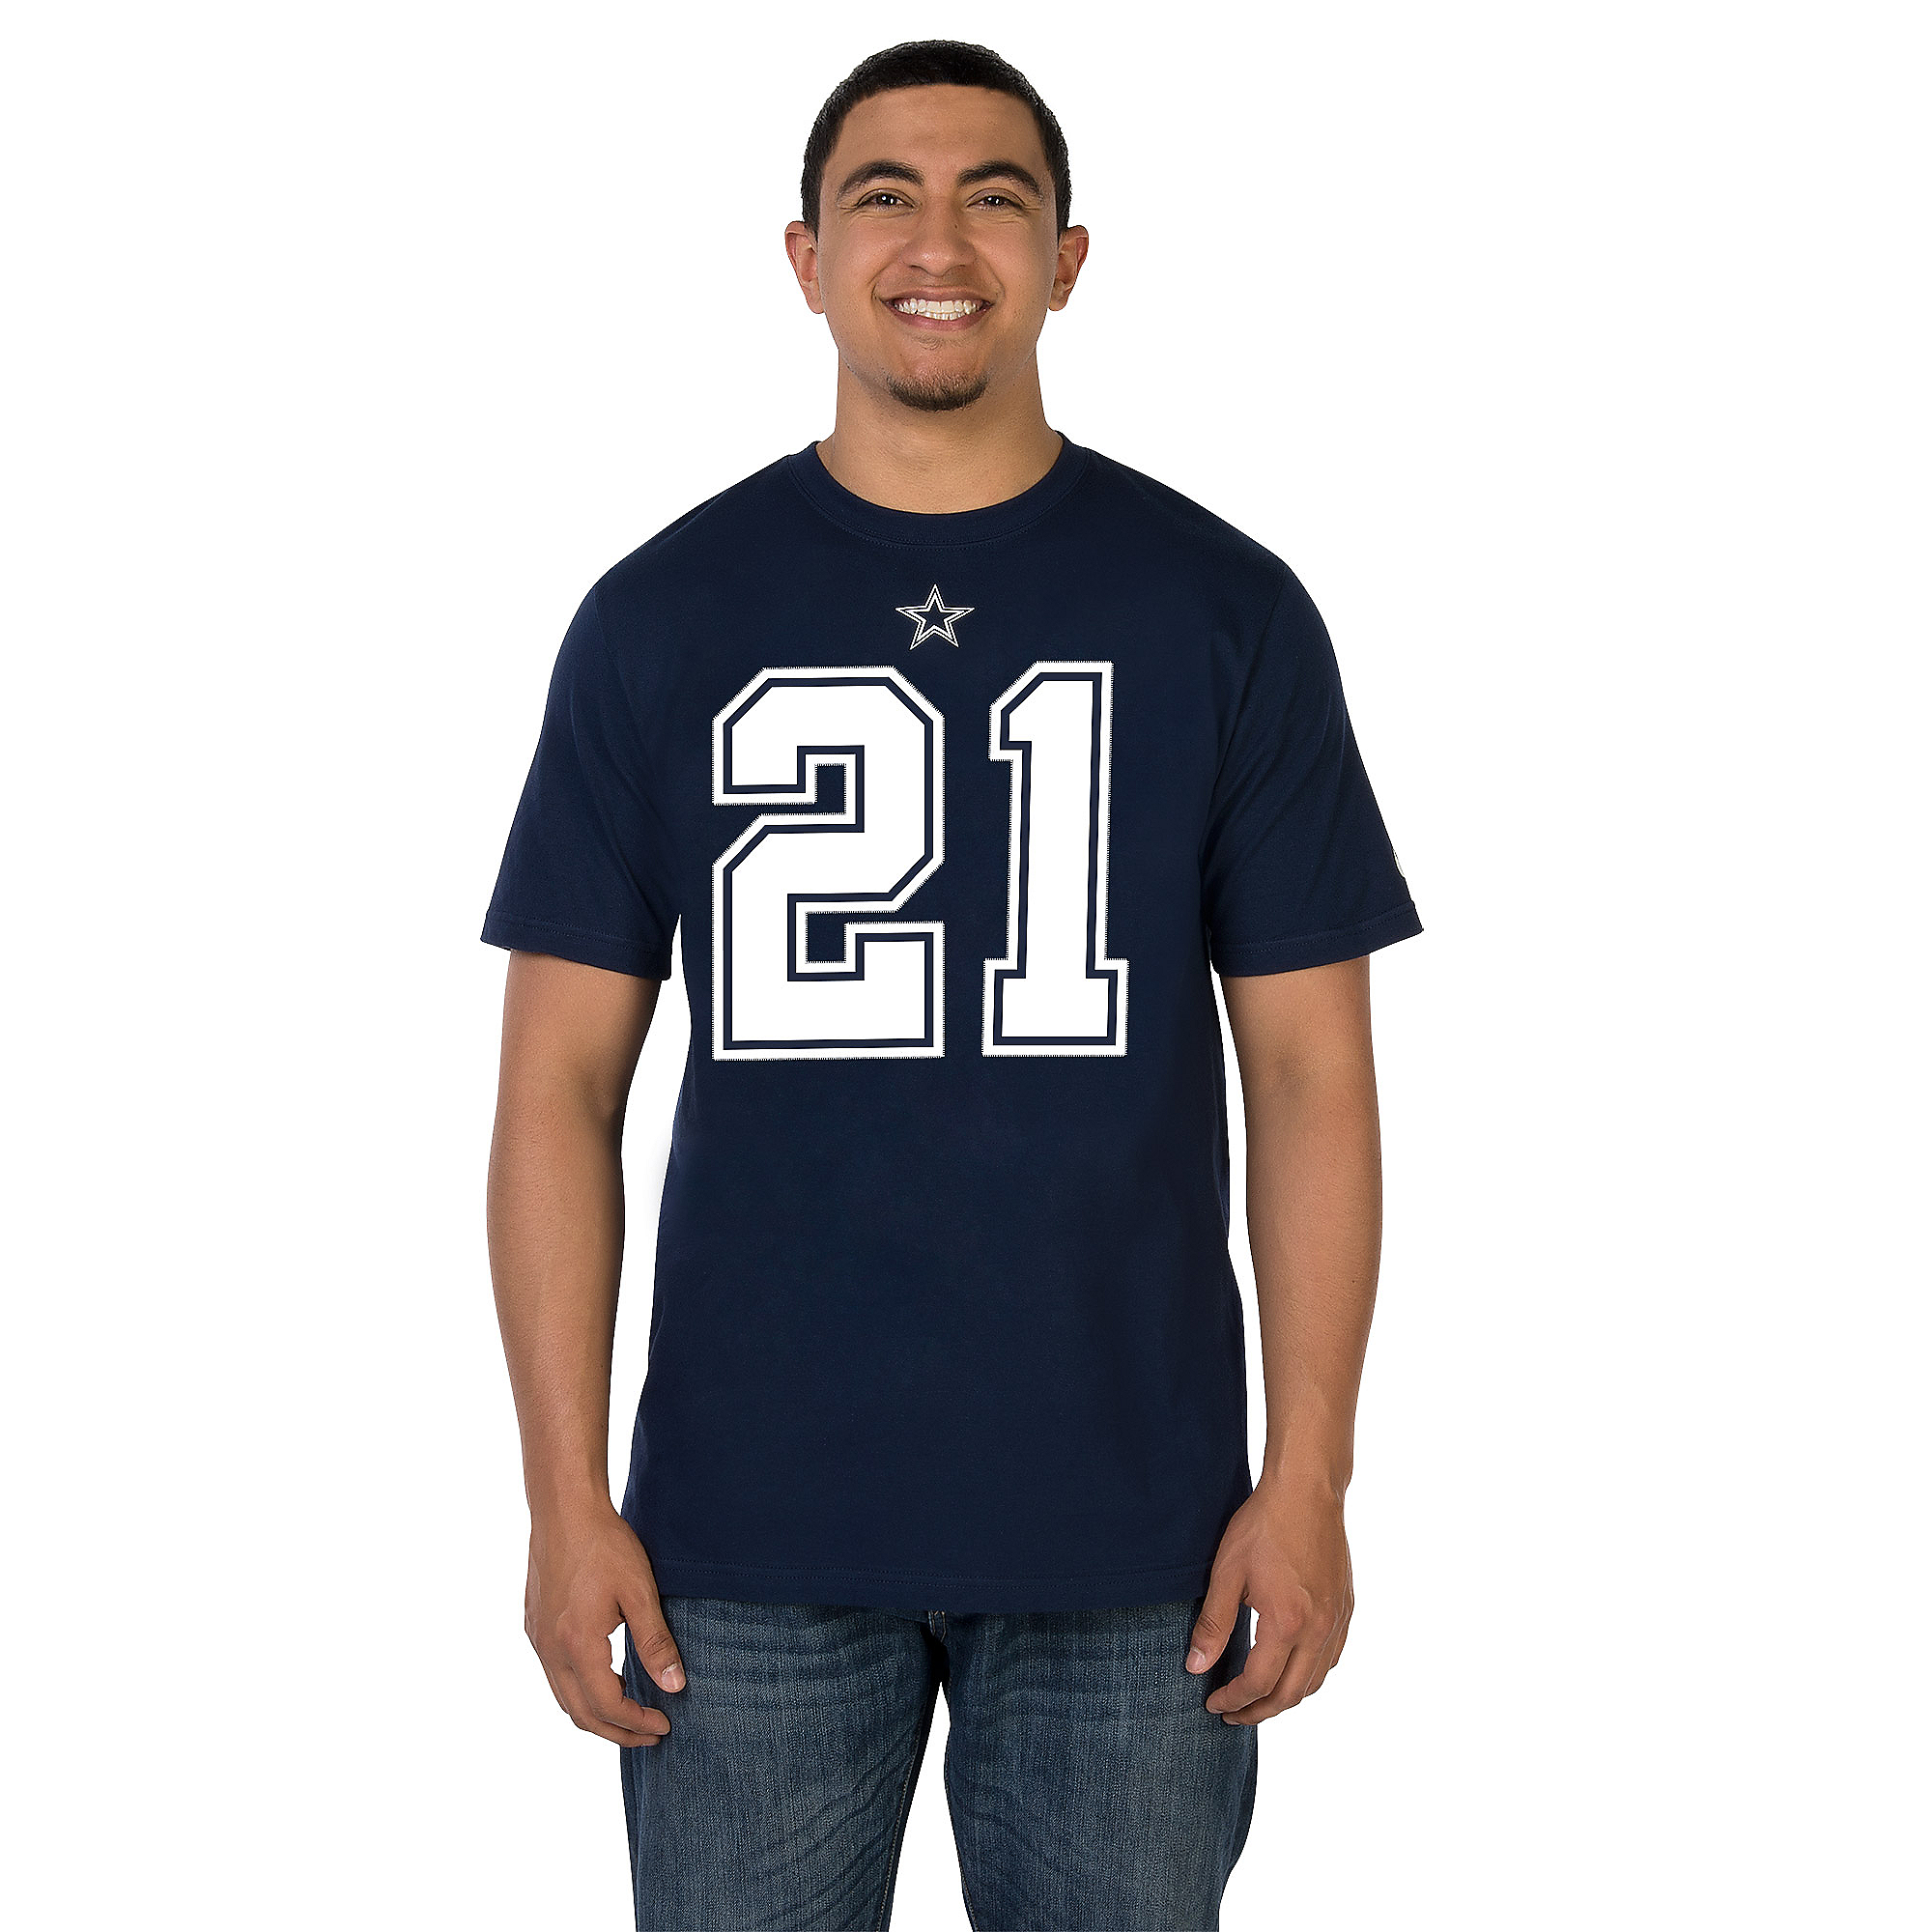 Dallas Cowboys Nike Ezekiel Elliott Name and Number Tee